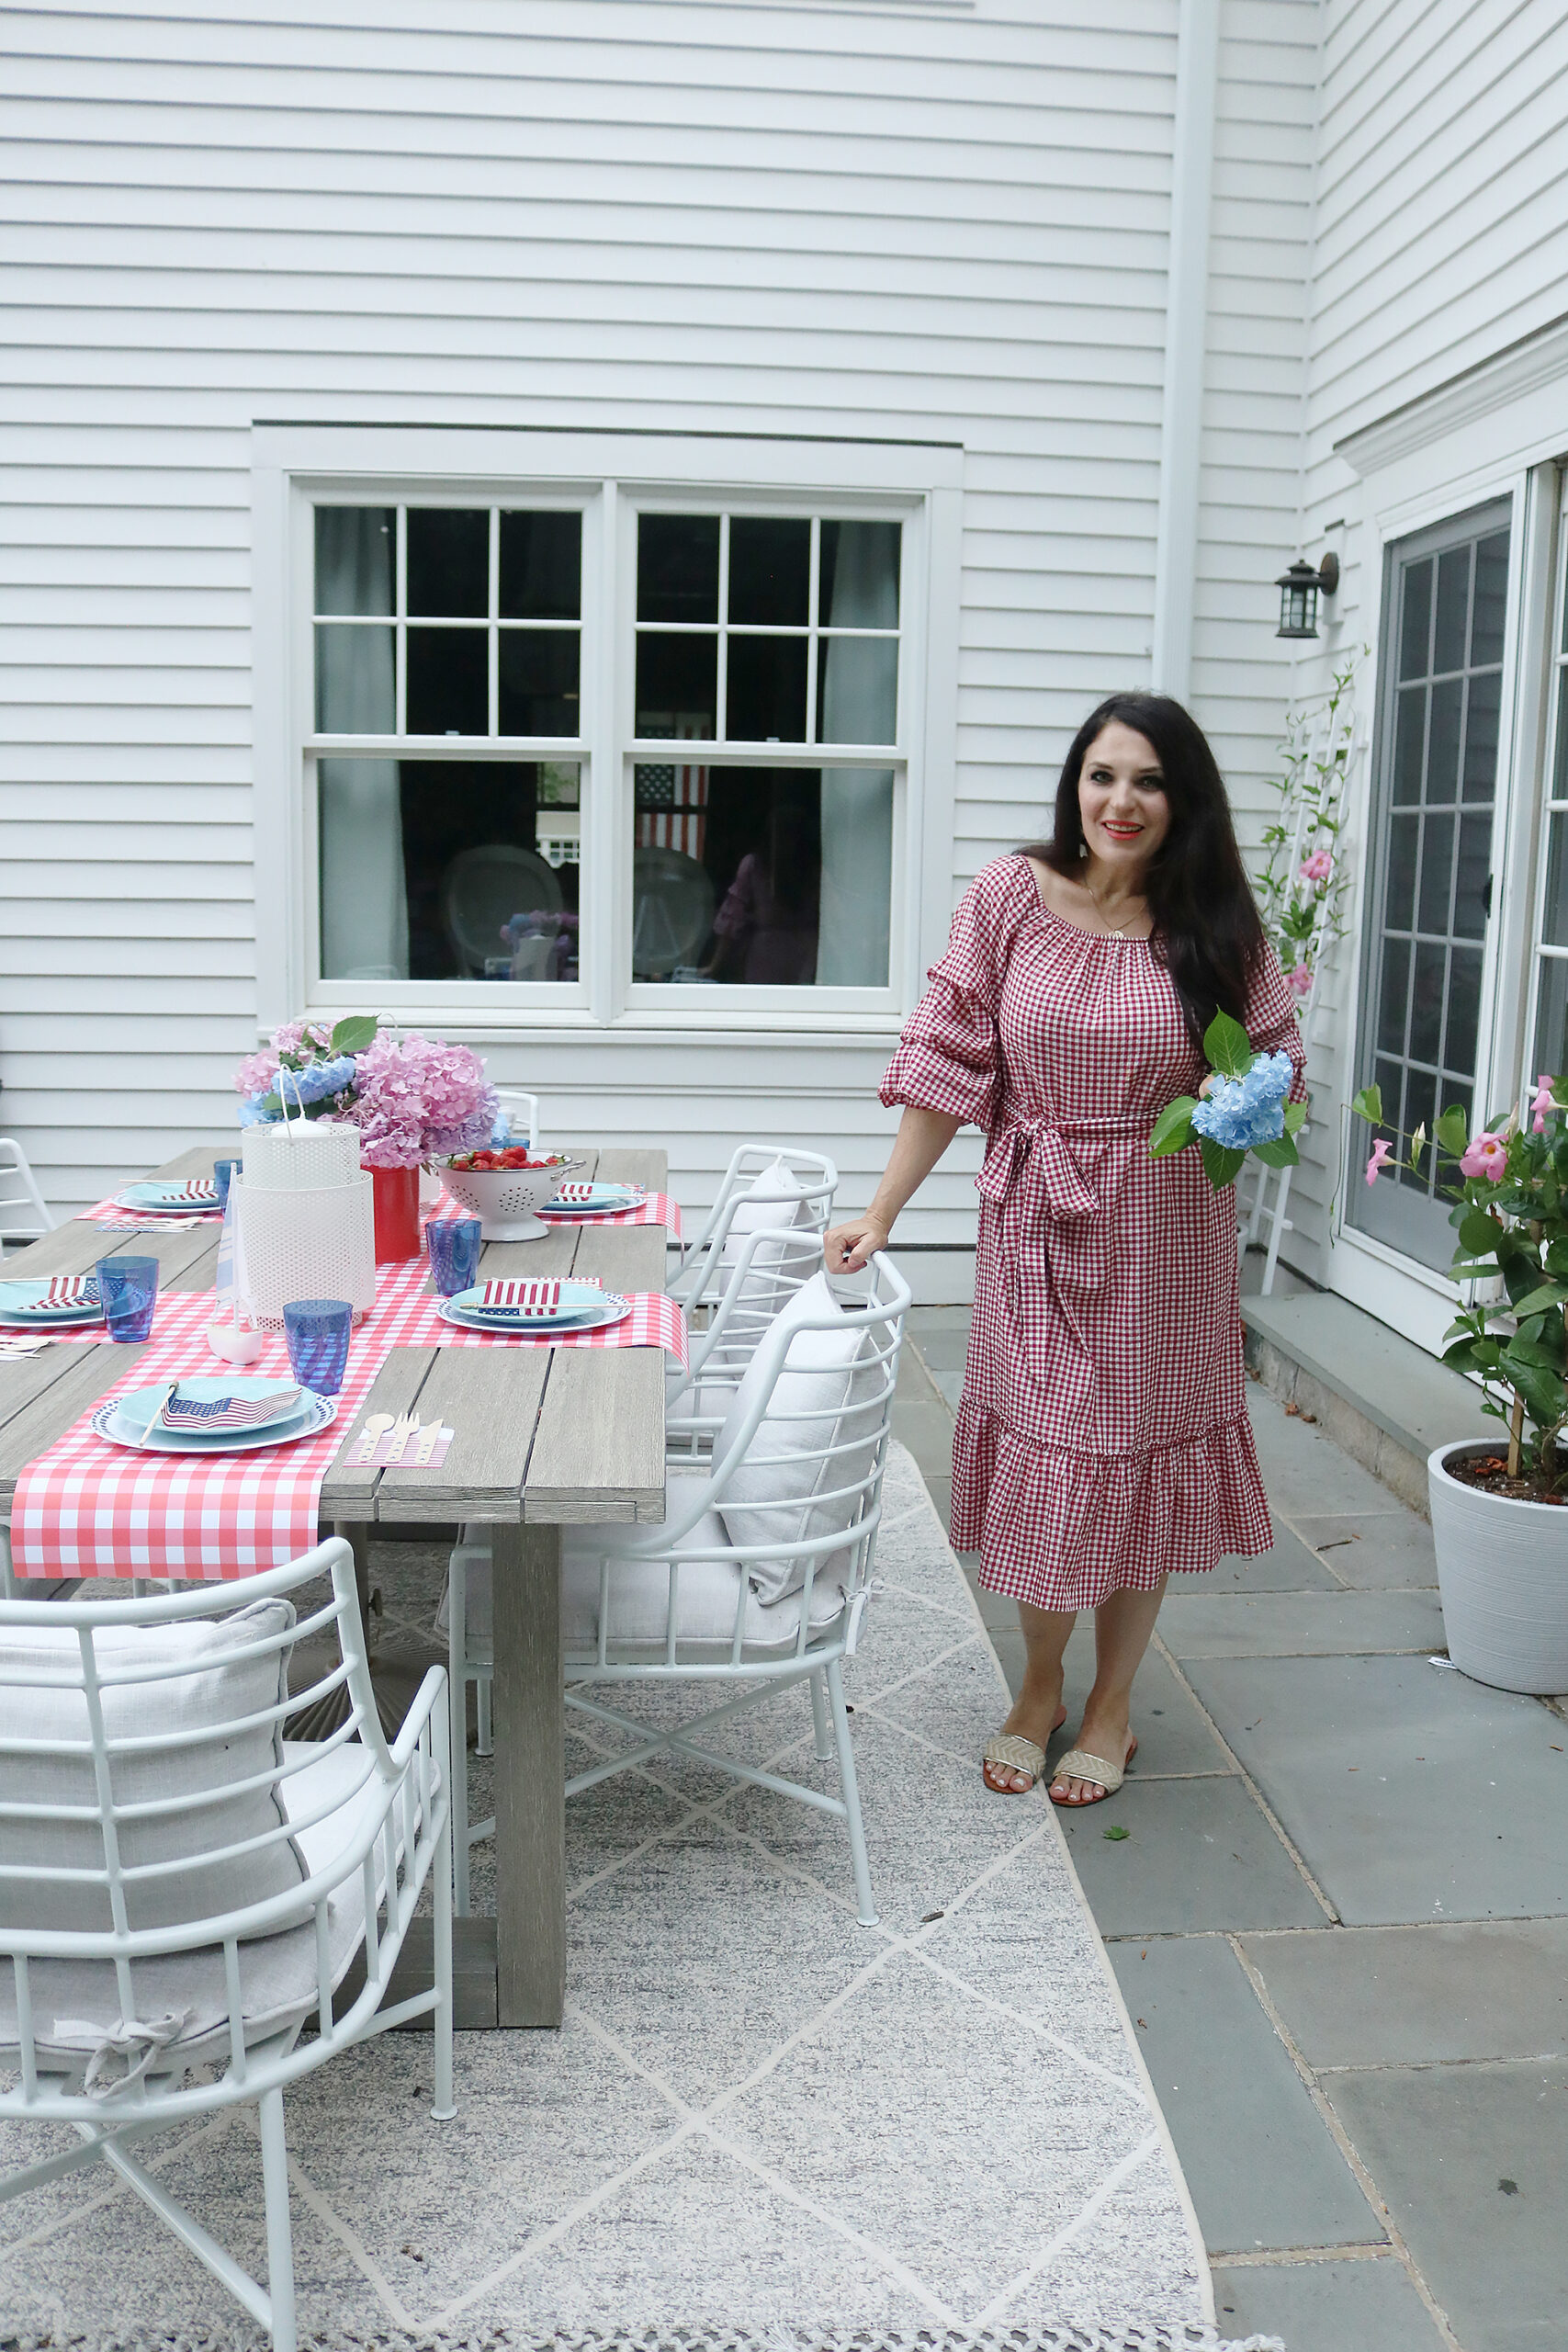 This year host a 4th of July barbecue party and sharing simple budget-friendly decorating tips, 4th of July outfit, red gingham dress, 4th of July entertaining tips || Darling Darleen Top CT Lifestyle Blogger #4thofjuly